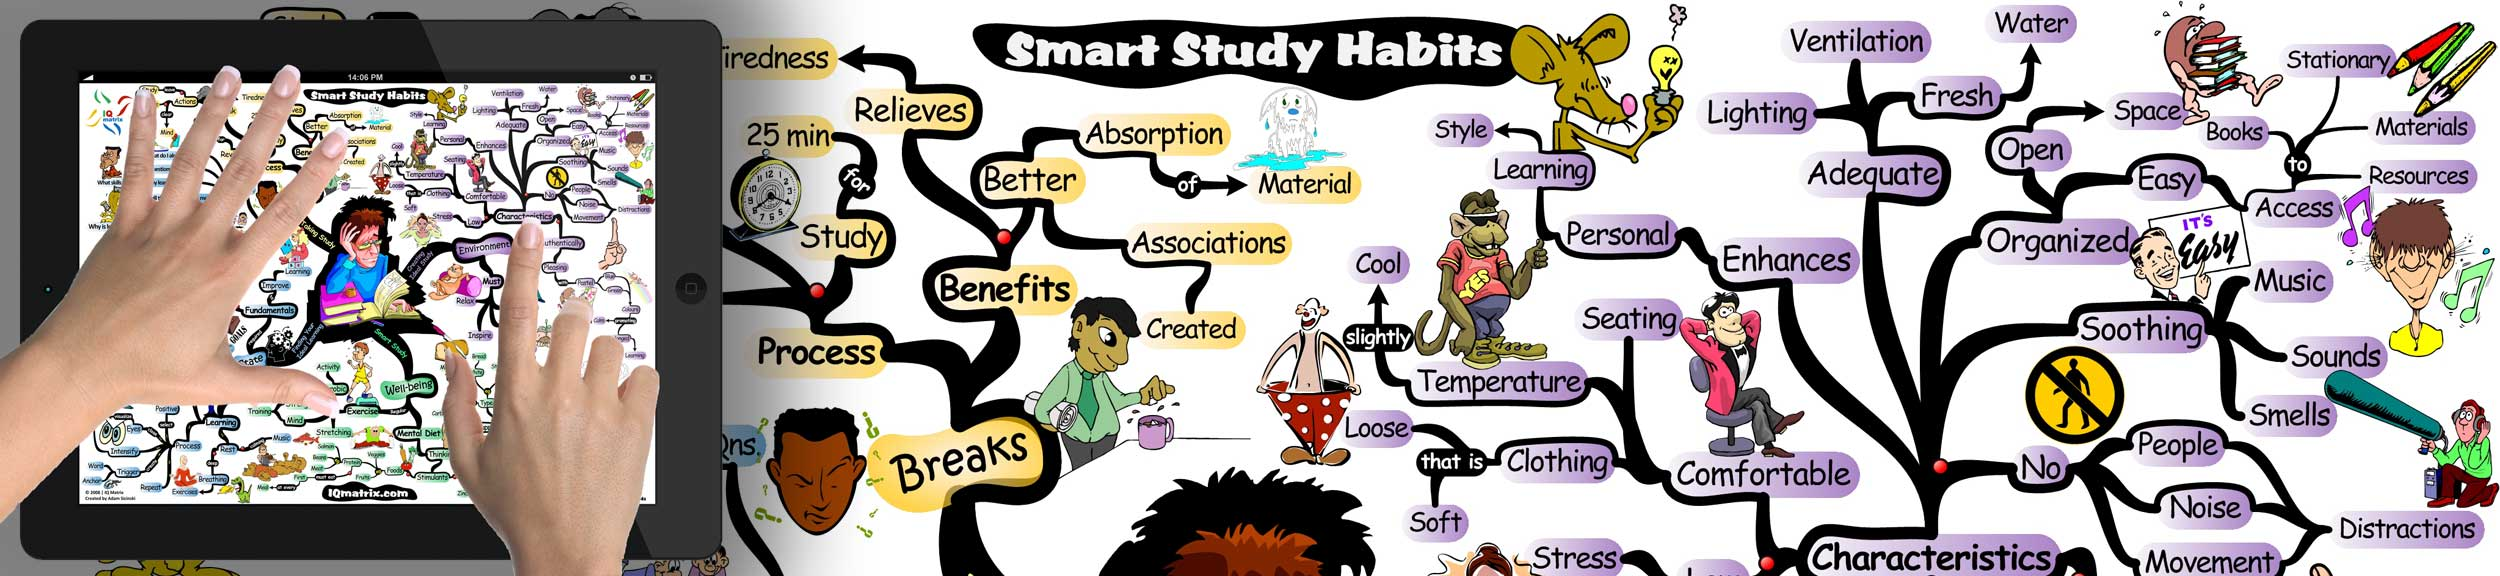 study habits 2 essay Essay on study habits 2012 what the following habits: establishing effective habits 2 weeks ago essay on health and make the largest database of cake.